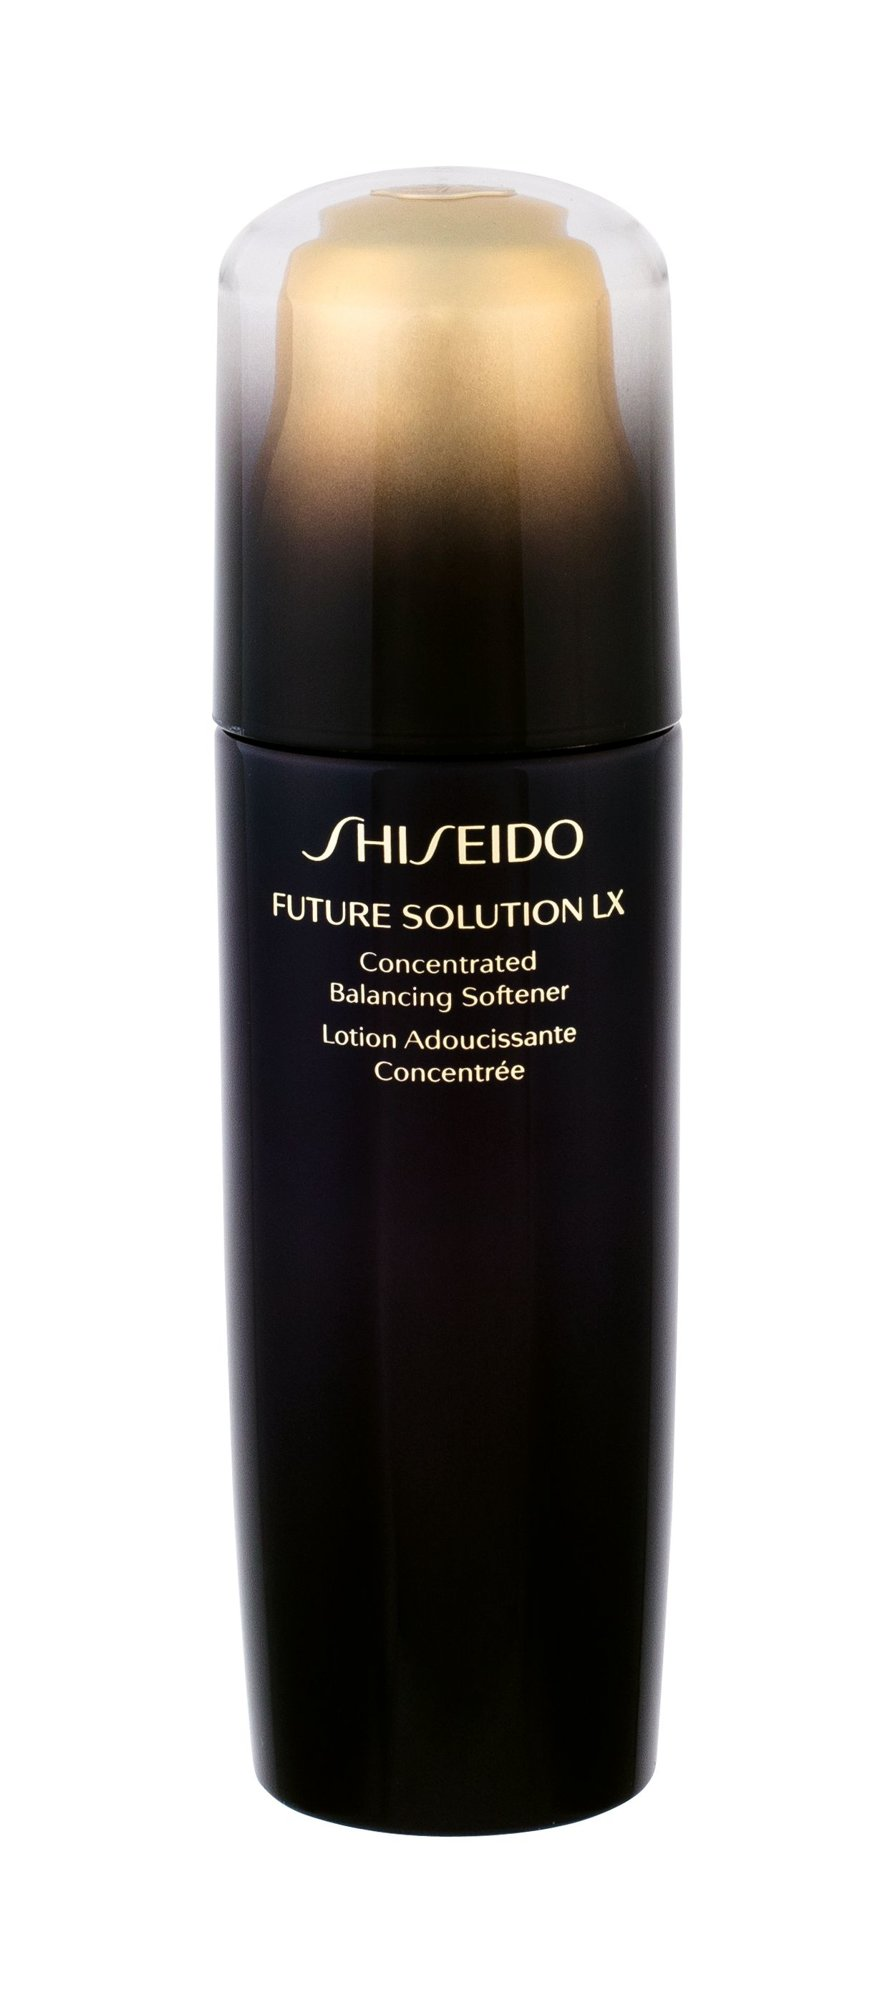 Shiseido Future Solution LX Cosmetic 170ml